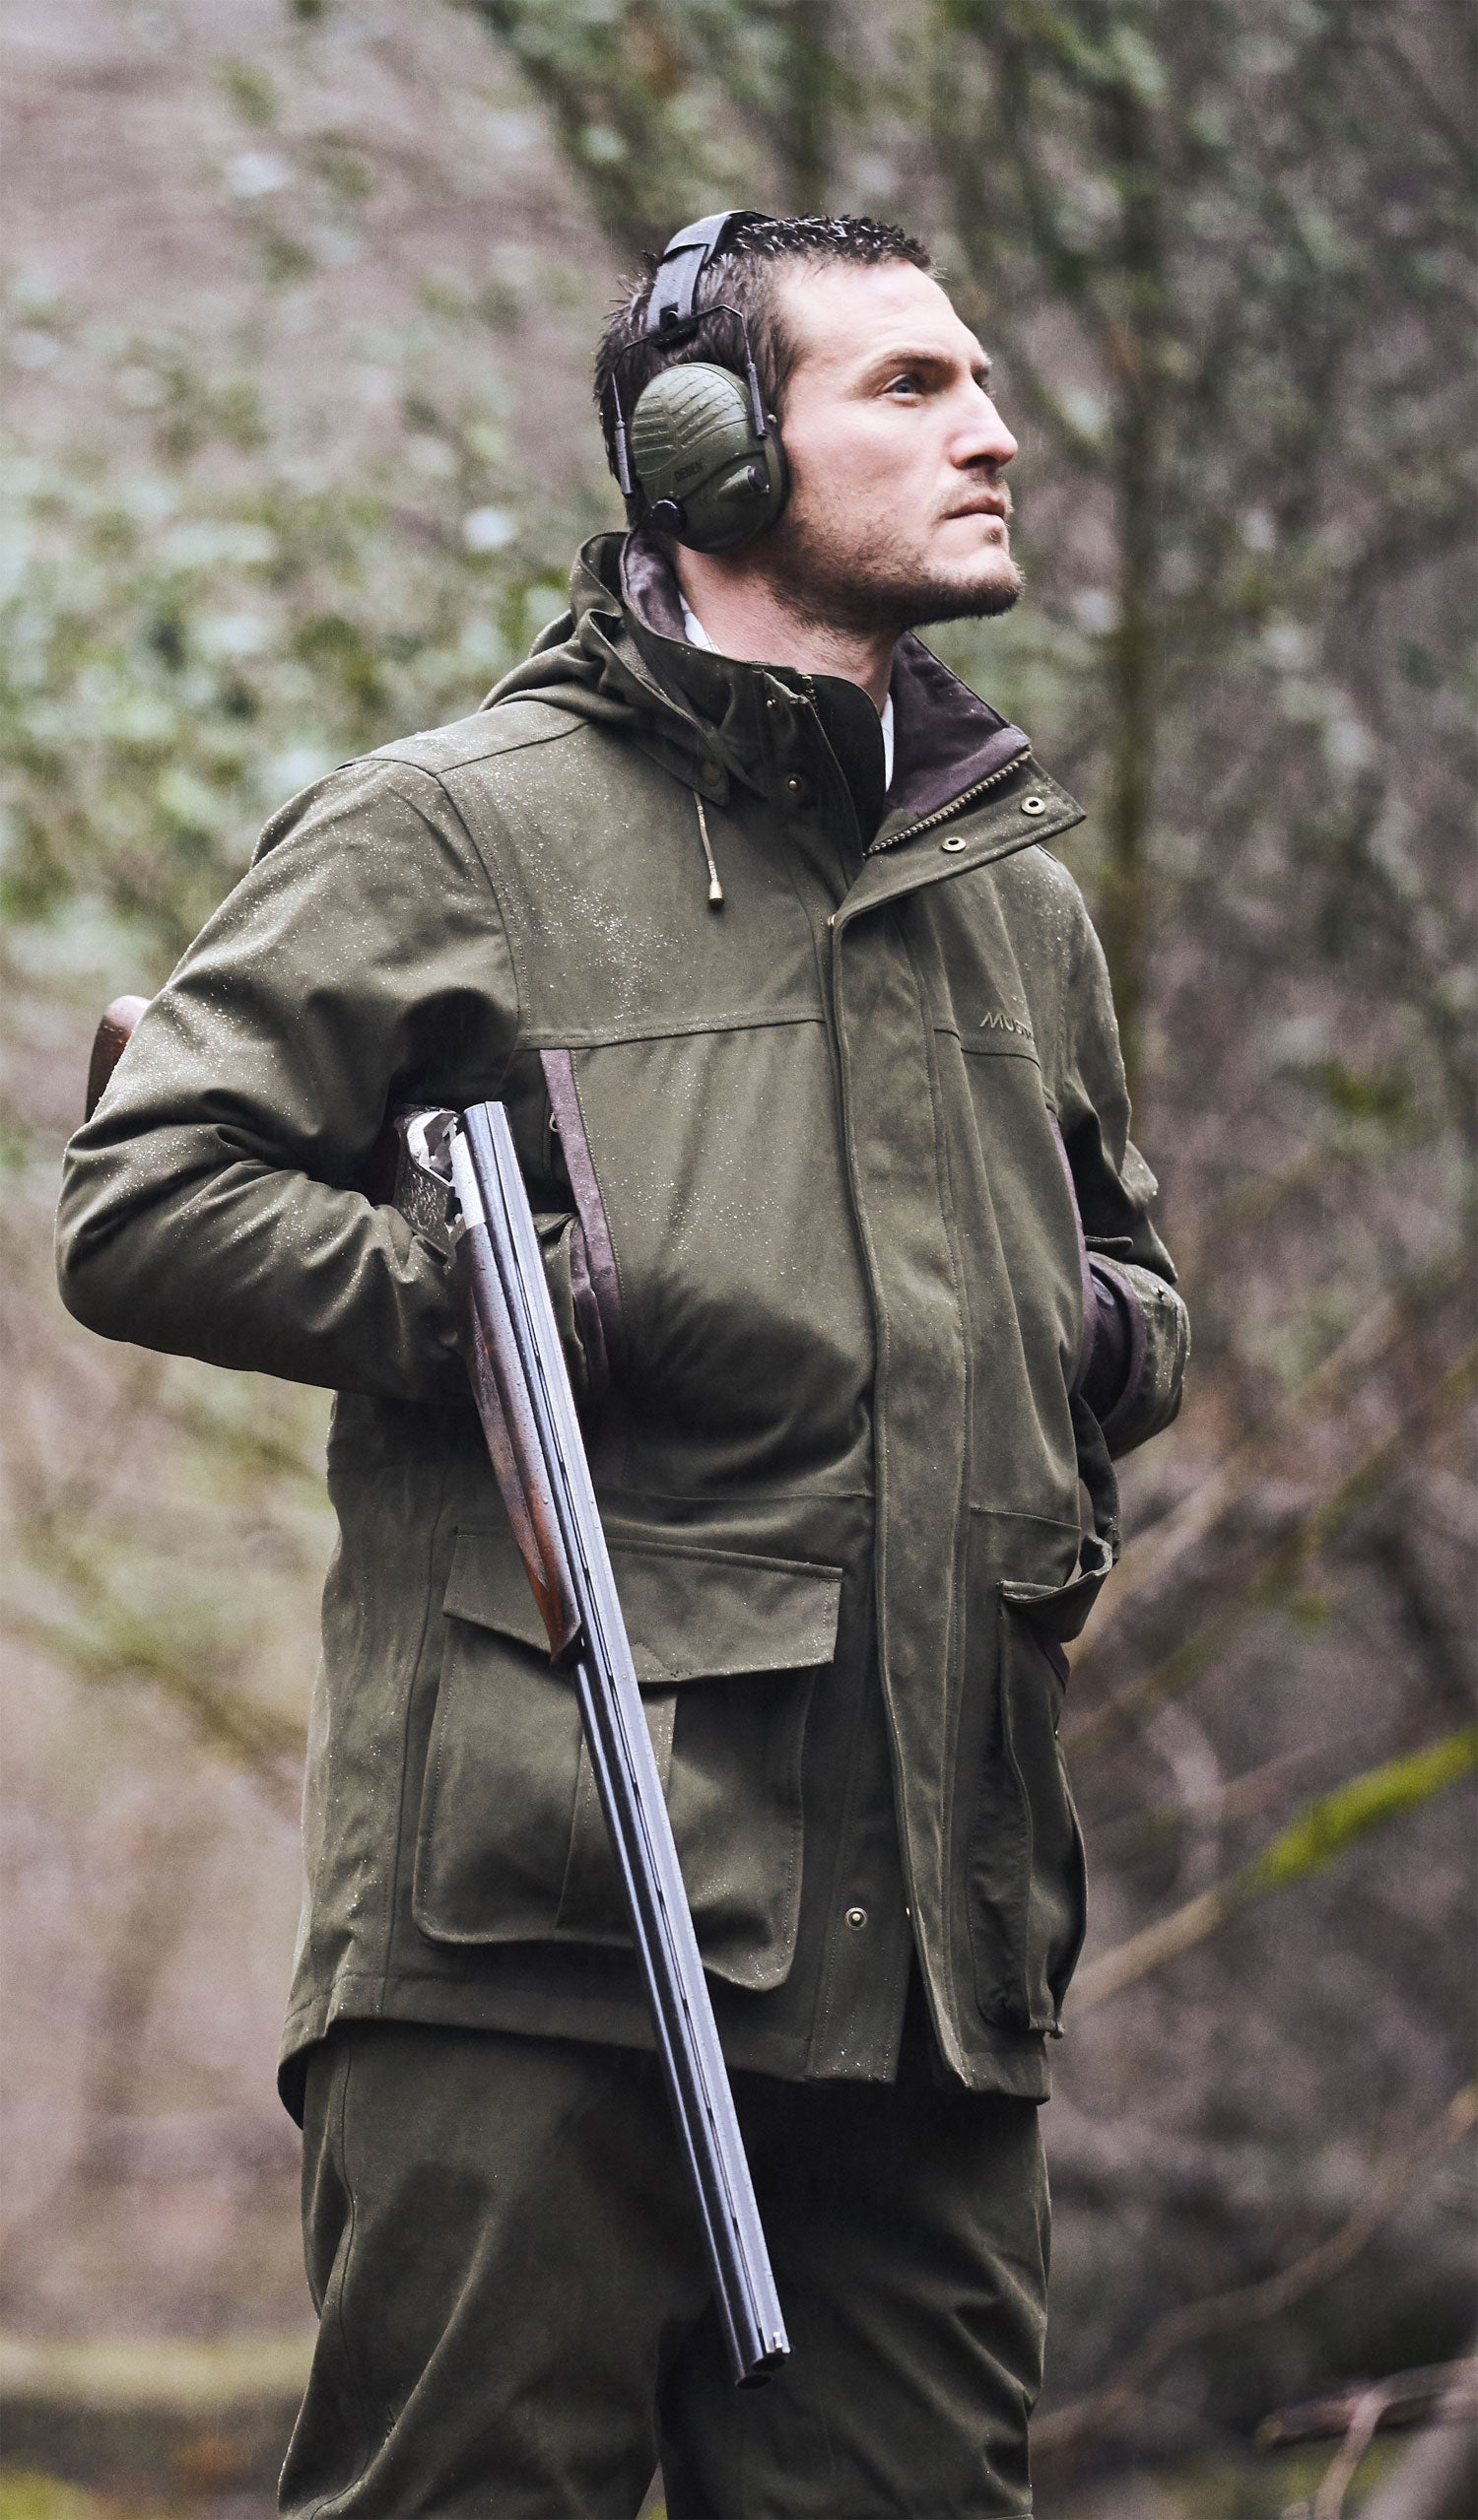 Musto Keepers Westmoor BR1 Jacket on a shooting trip